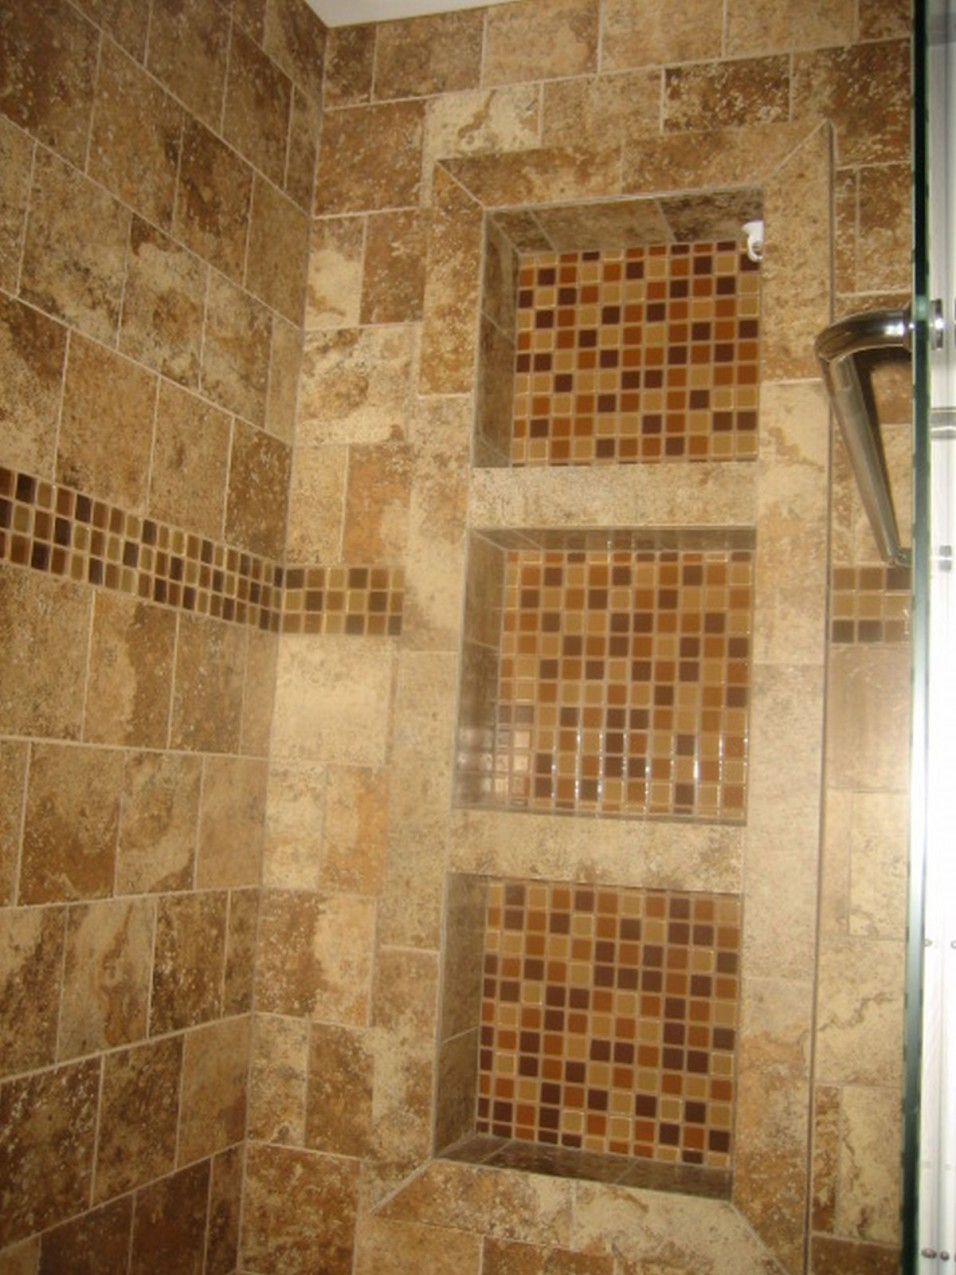 glass-shower-cabin-door-with-aluminum-handle-ceramic-wall-tile-designing-design-house-traditional-modern-random-offset-surround-shower-types-of-wall-bathroom-tile-ideas-1200x1600